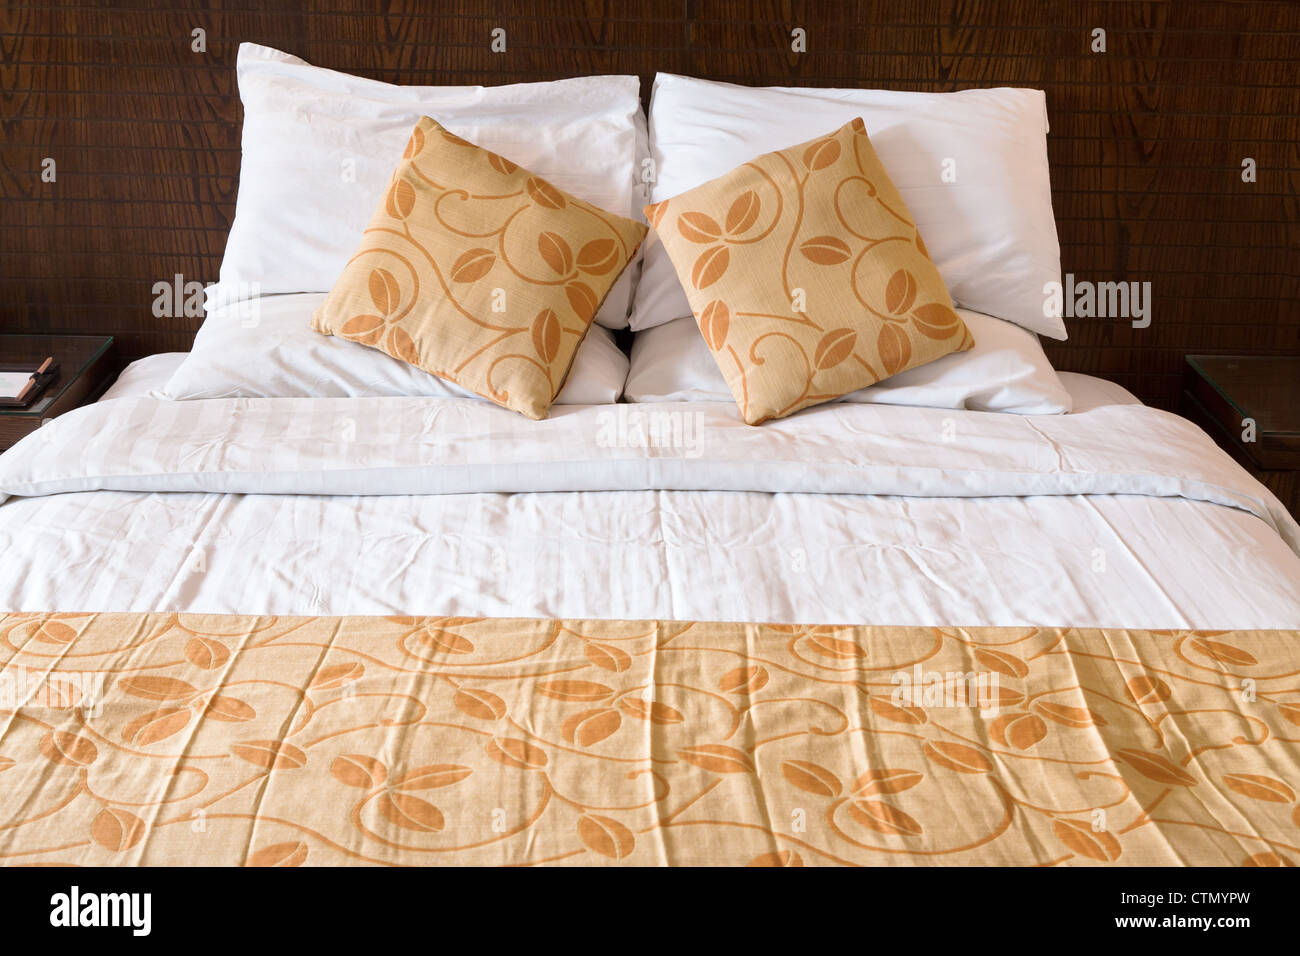 double bed in hotel bedroom - Stock Image